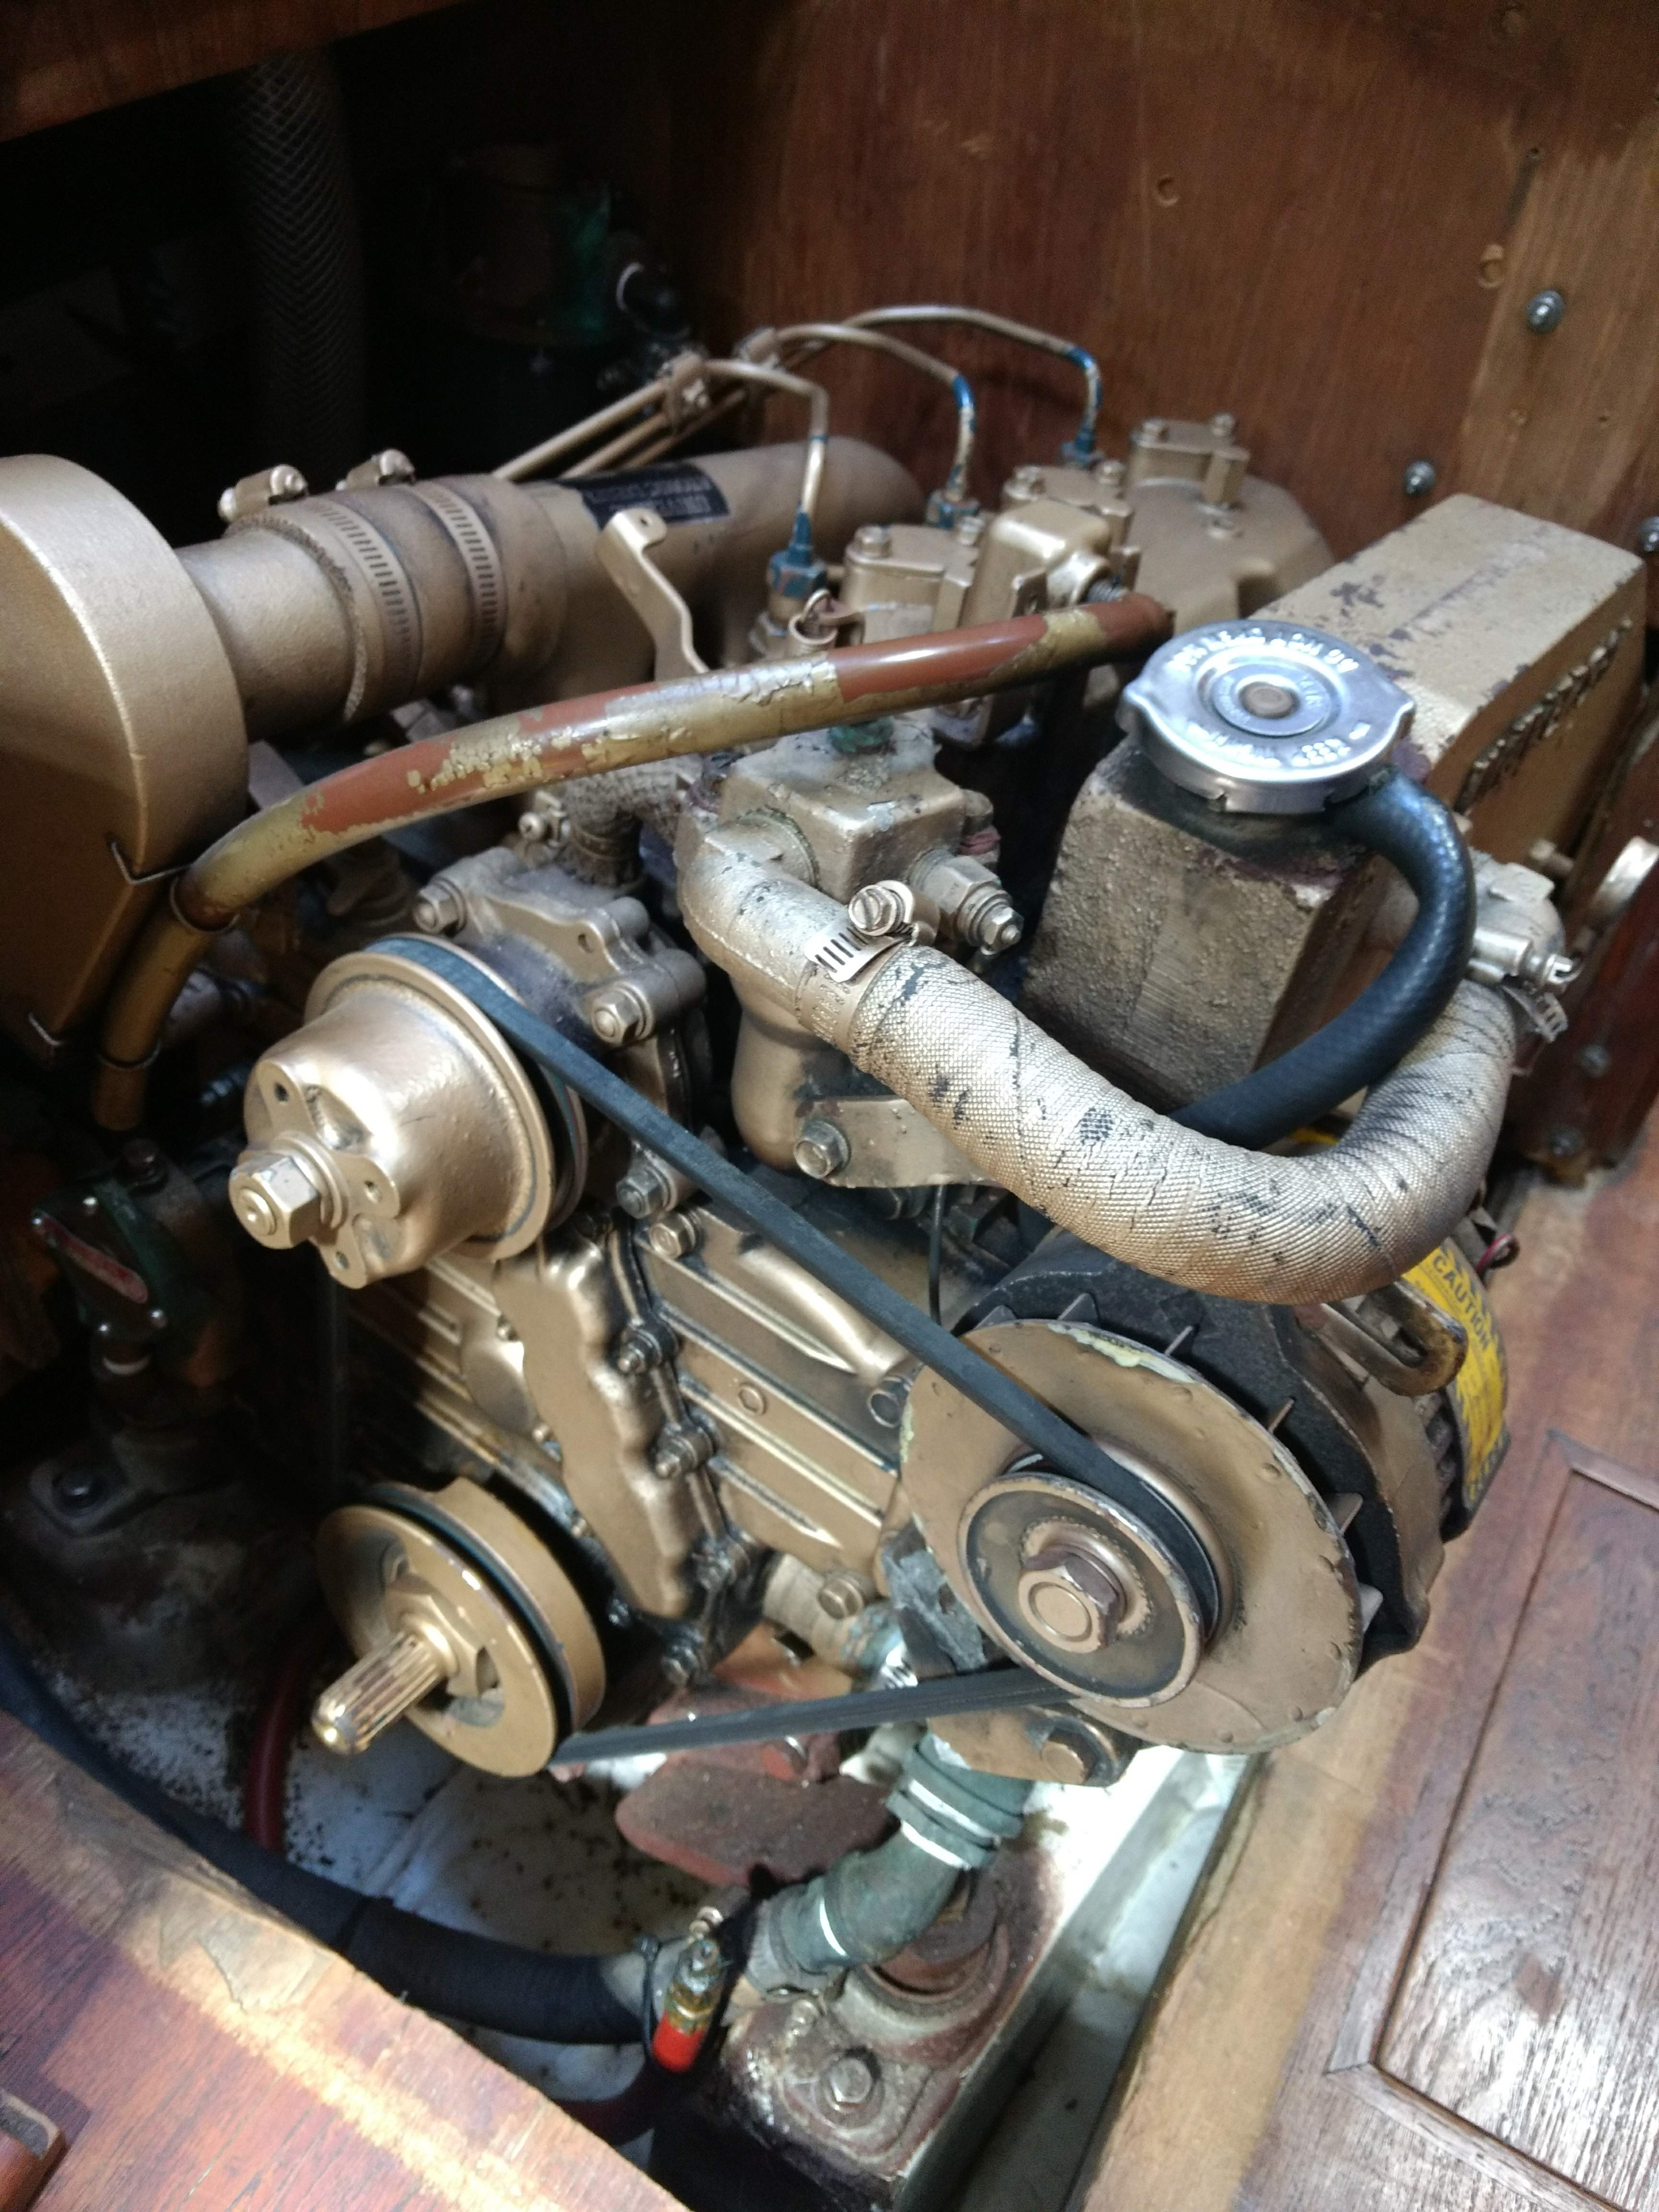 This is a picture of my engine.